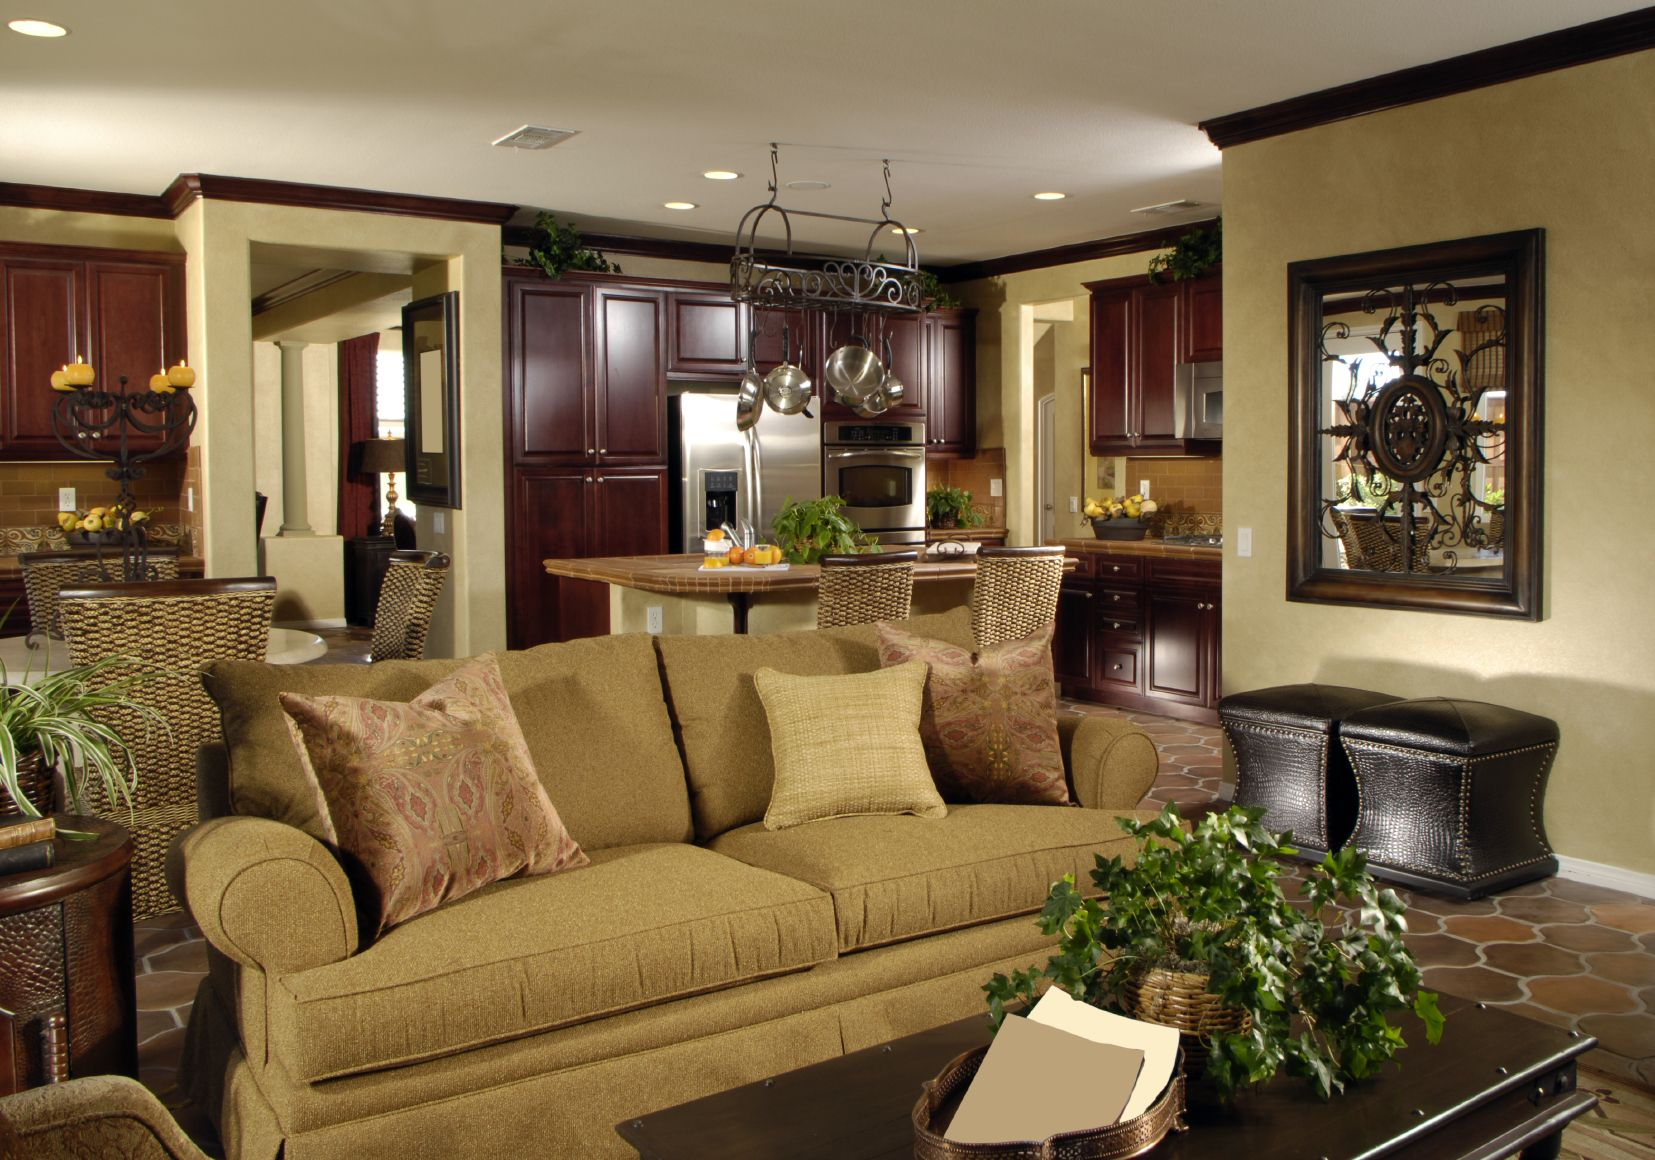 Wood Cabinetry Throughout The Kitchen Area In This Shared Open Space Contrast With Beige Walls And Tile Flooring While Brown Roll Arm Sofa Dark